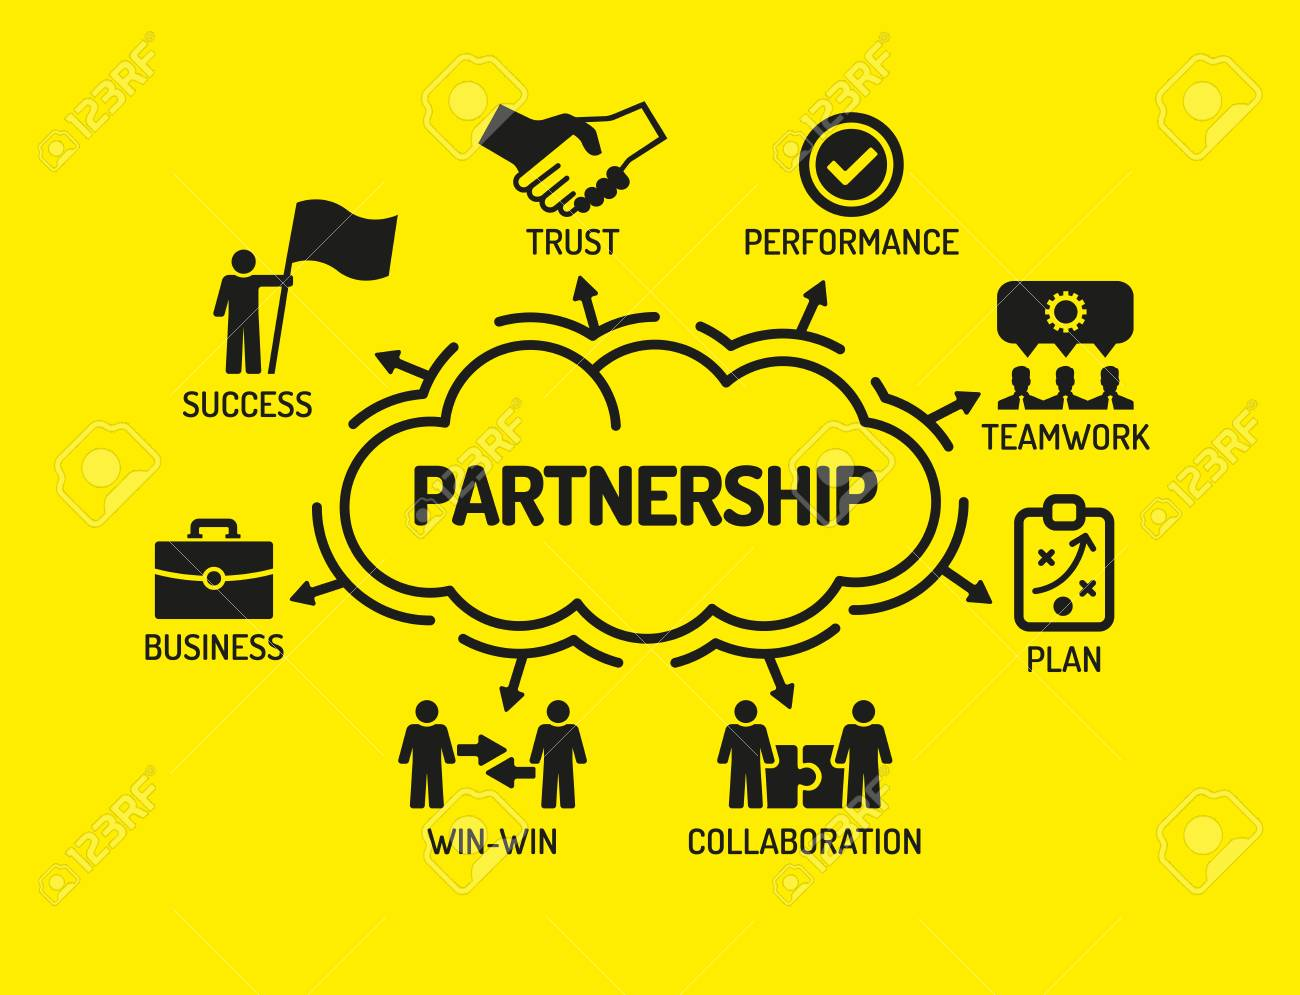 Partnership. Chart with keywords and icons on yellow background - 61464130